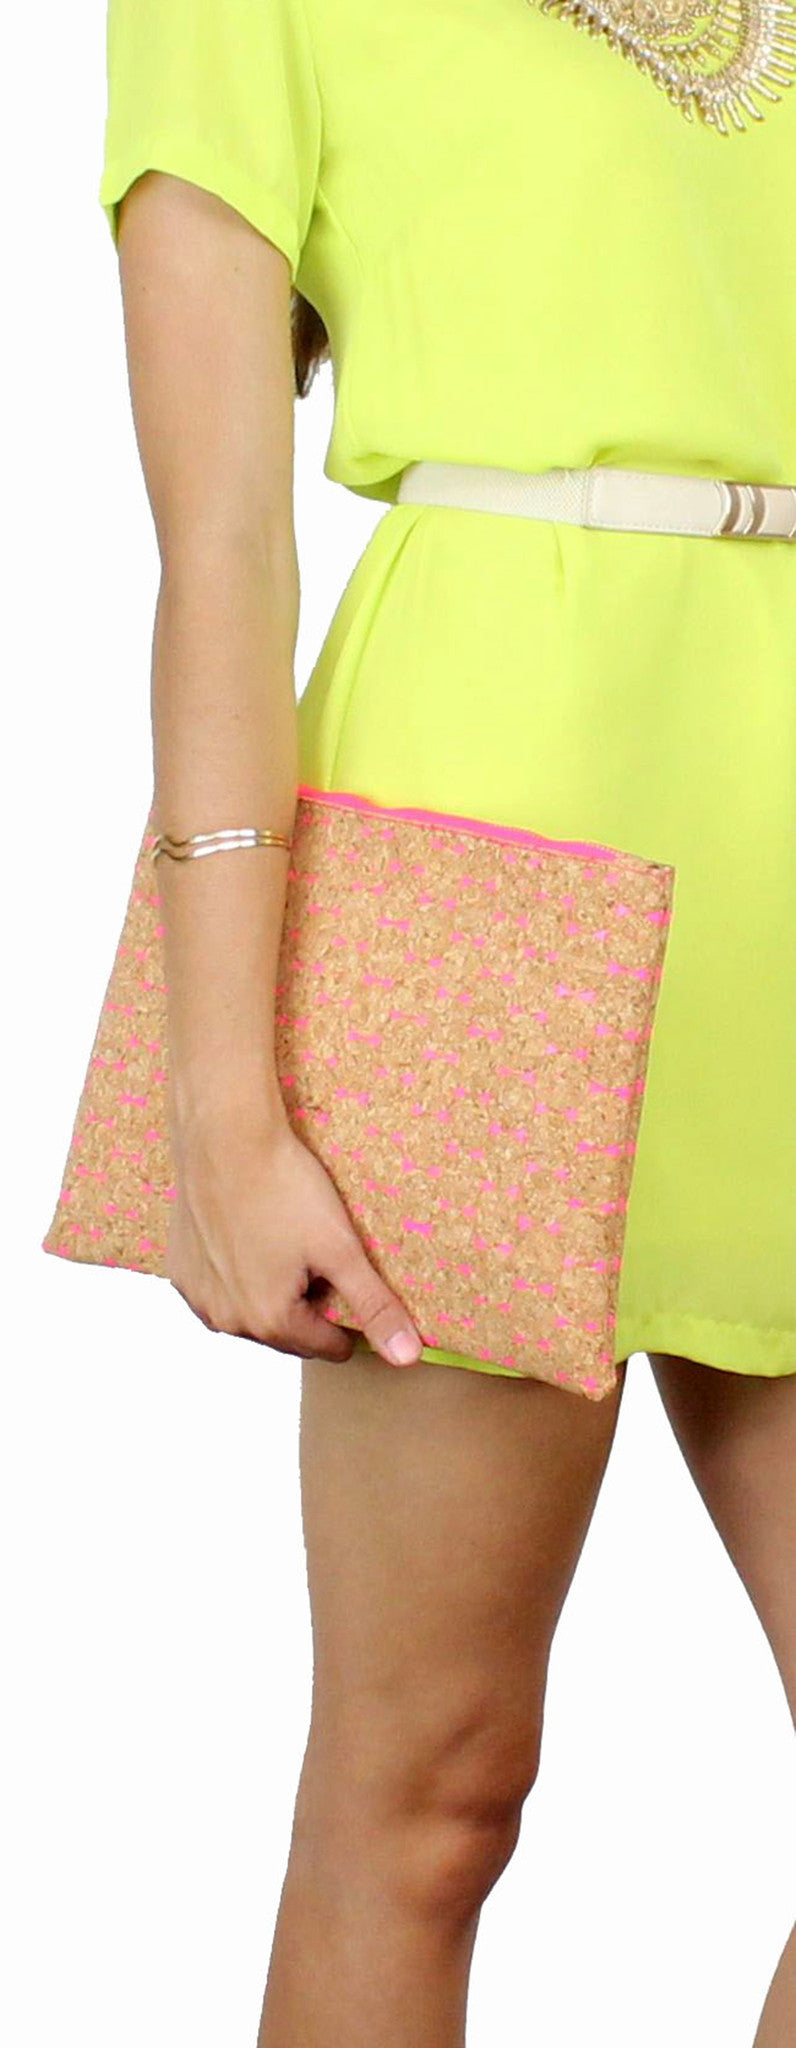 How to Love Cork & Hot Pink Clutch